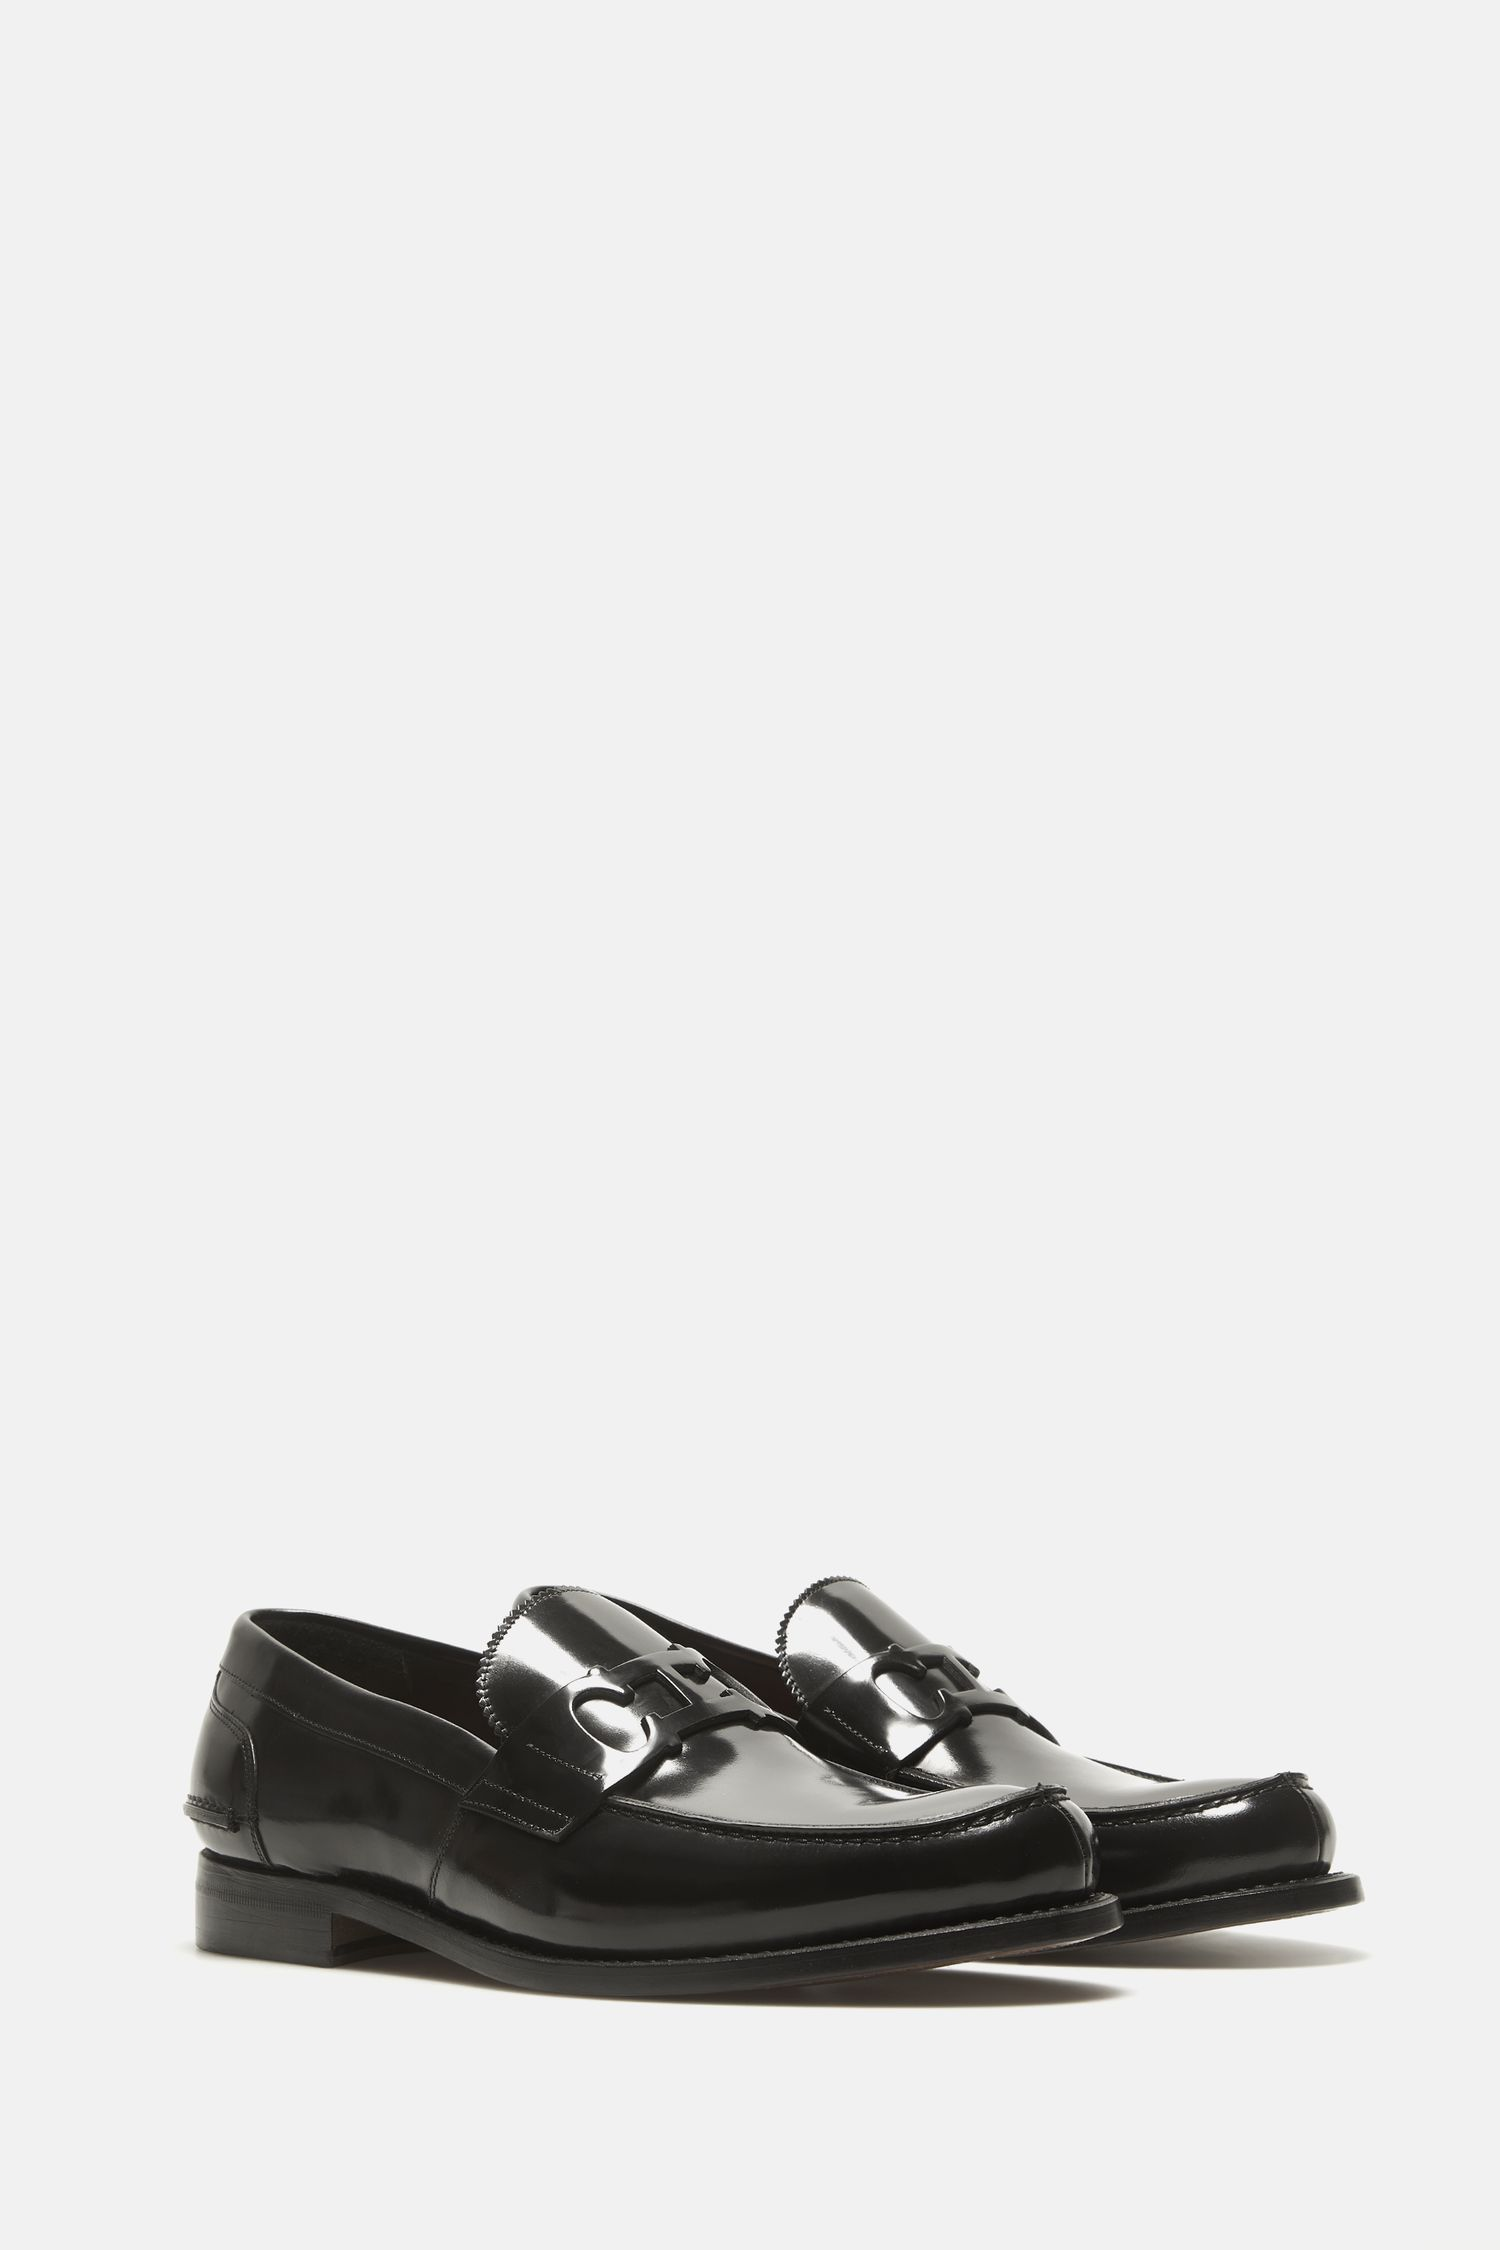 Initials Insignia cutout leather loafers